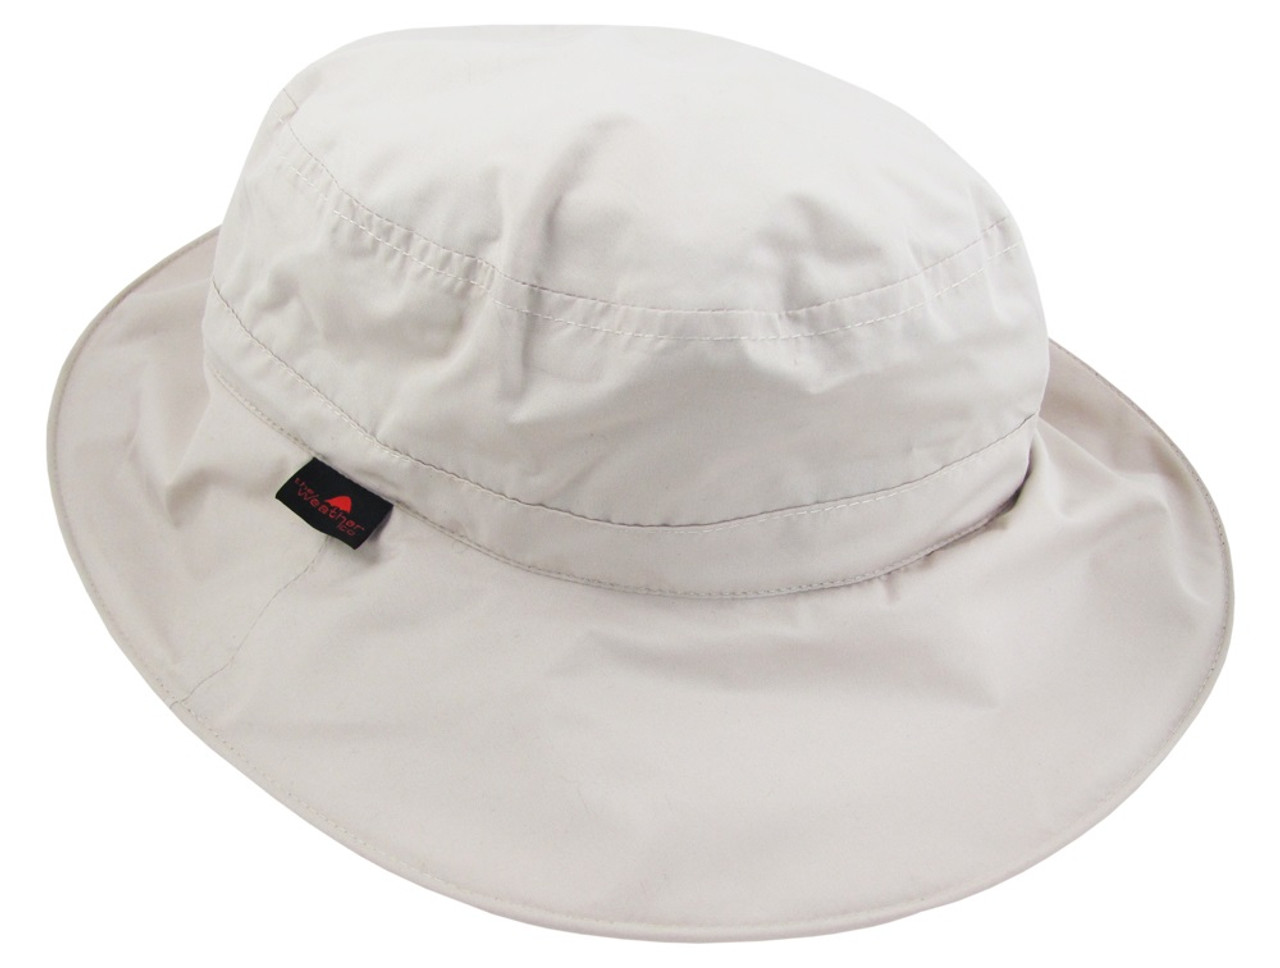 6849c79b94a6a The Weather Company Golf- Waterproof Hat ...